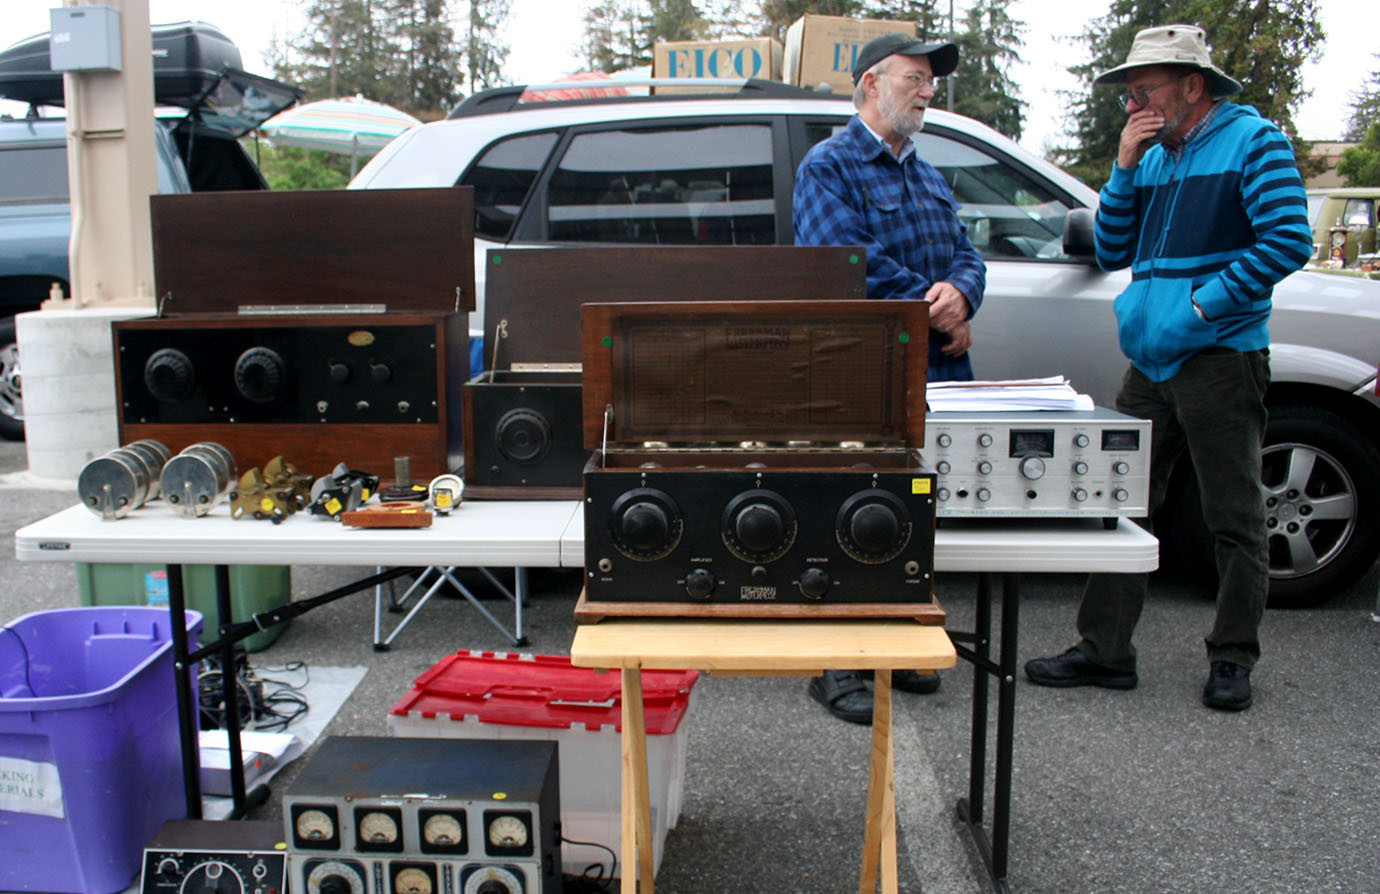 Paul Waltimyer and another man stand behind his antique radios at the Electronics Flea Market.